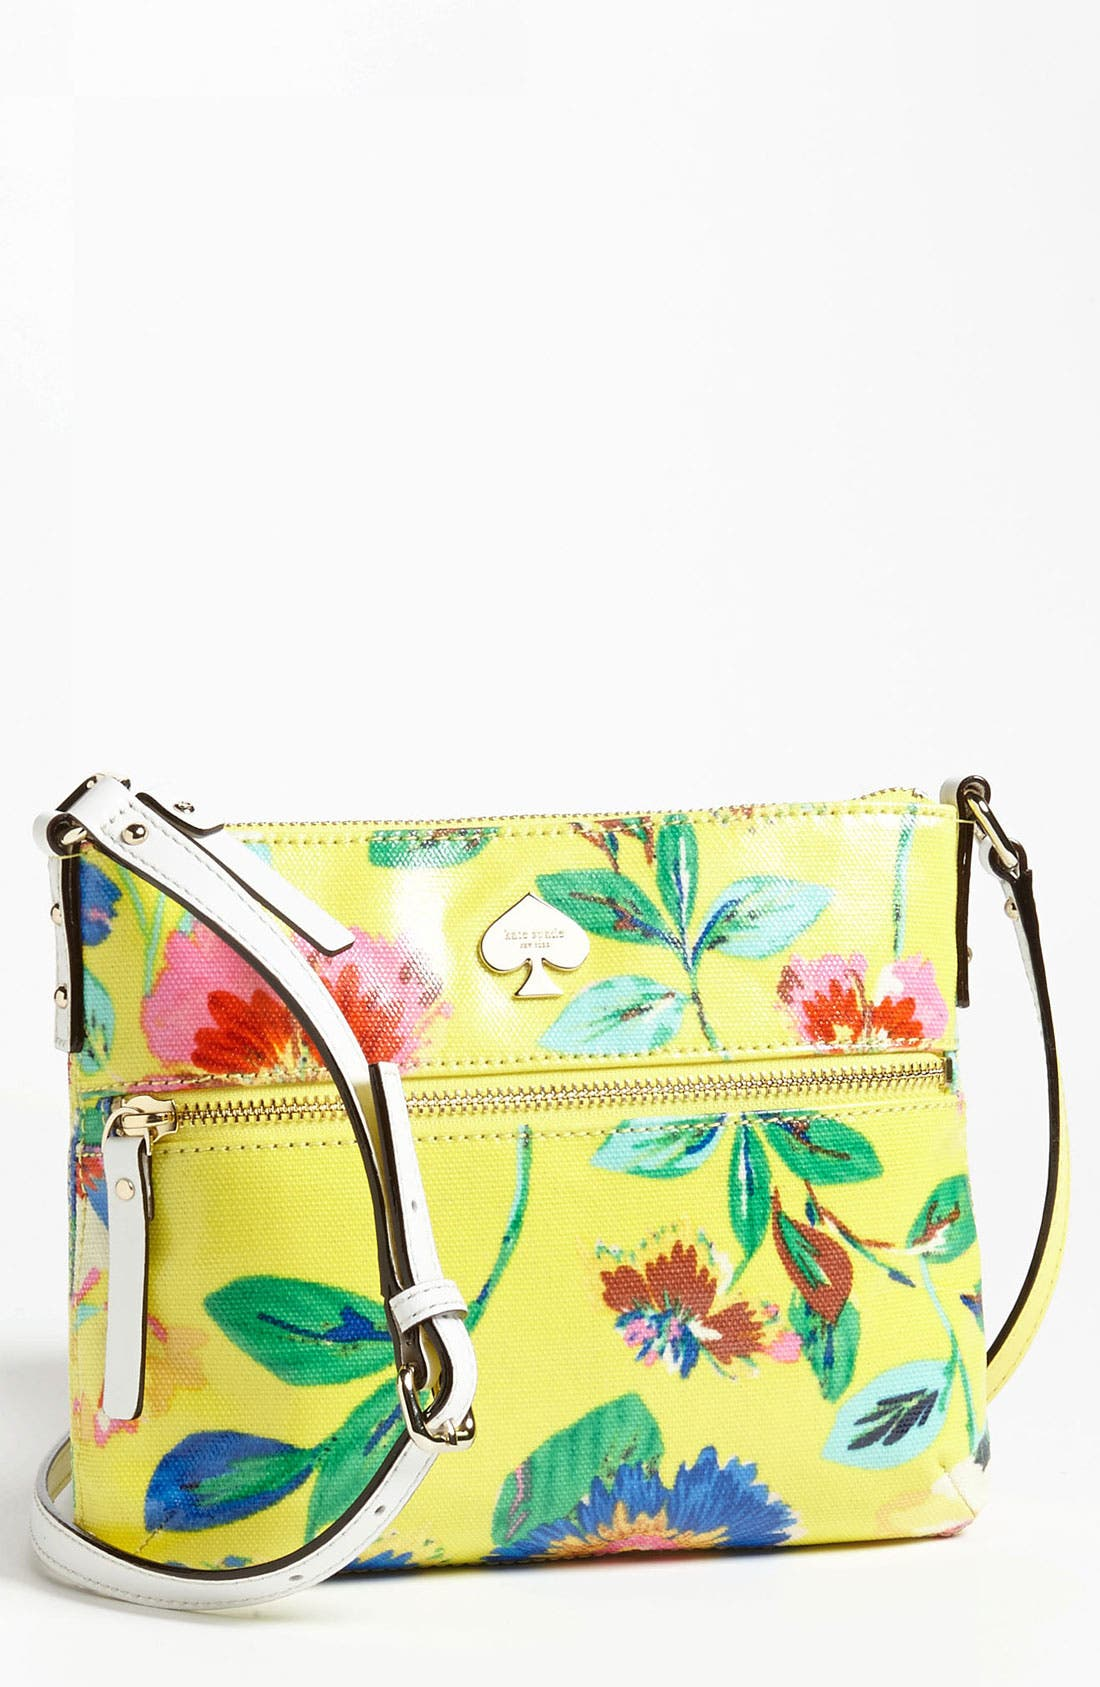 Main Image - kate spade new york 'flicker - tenley' crossbody bag